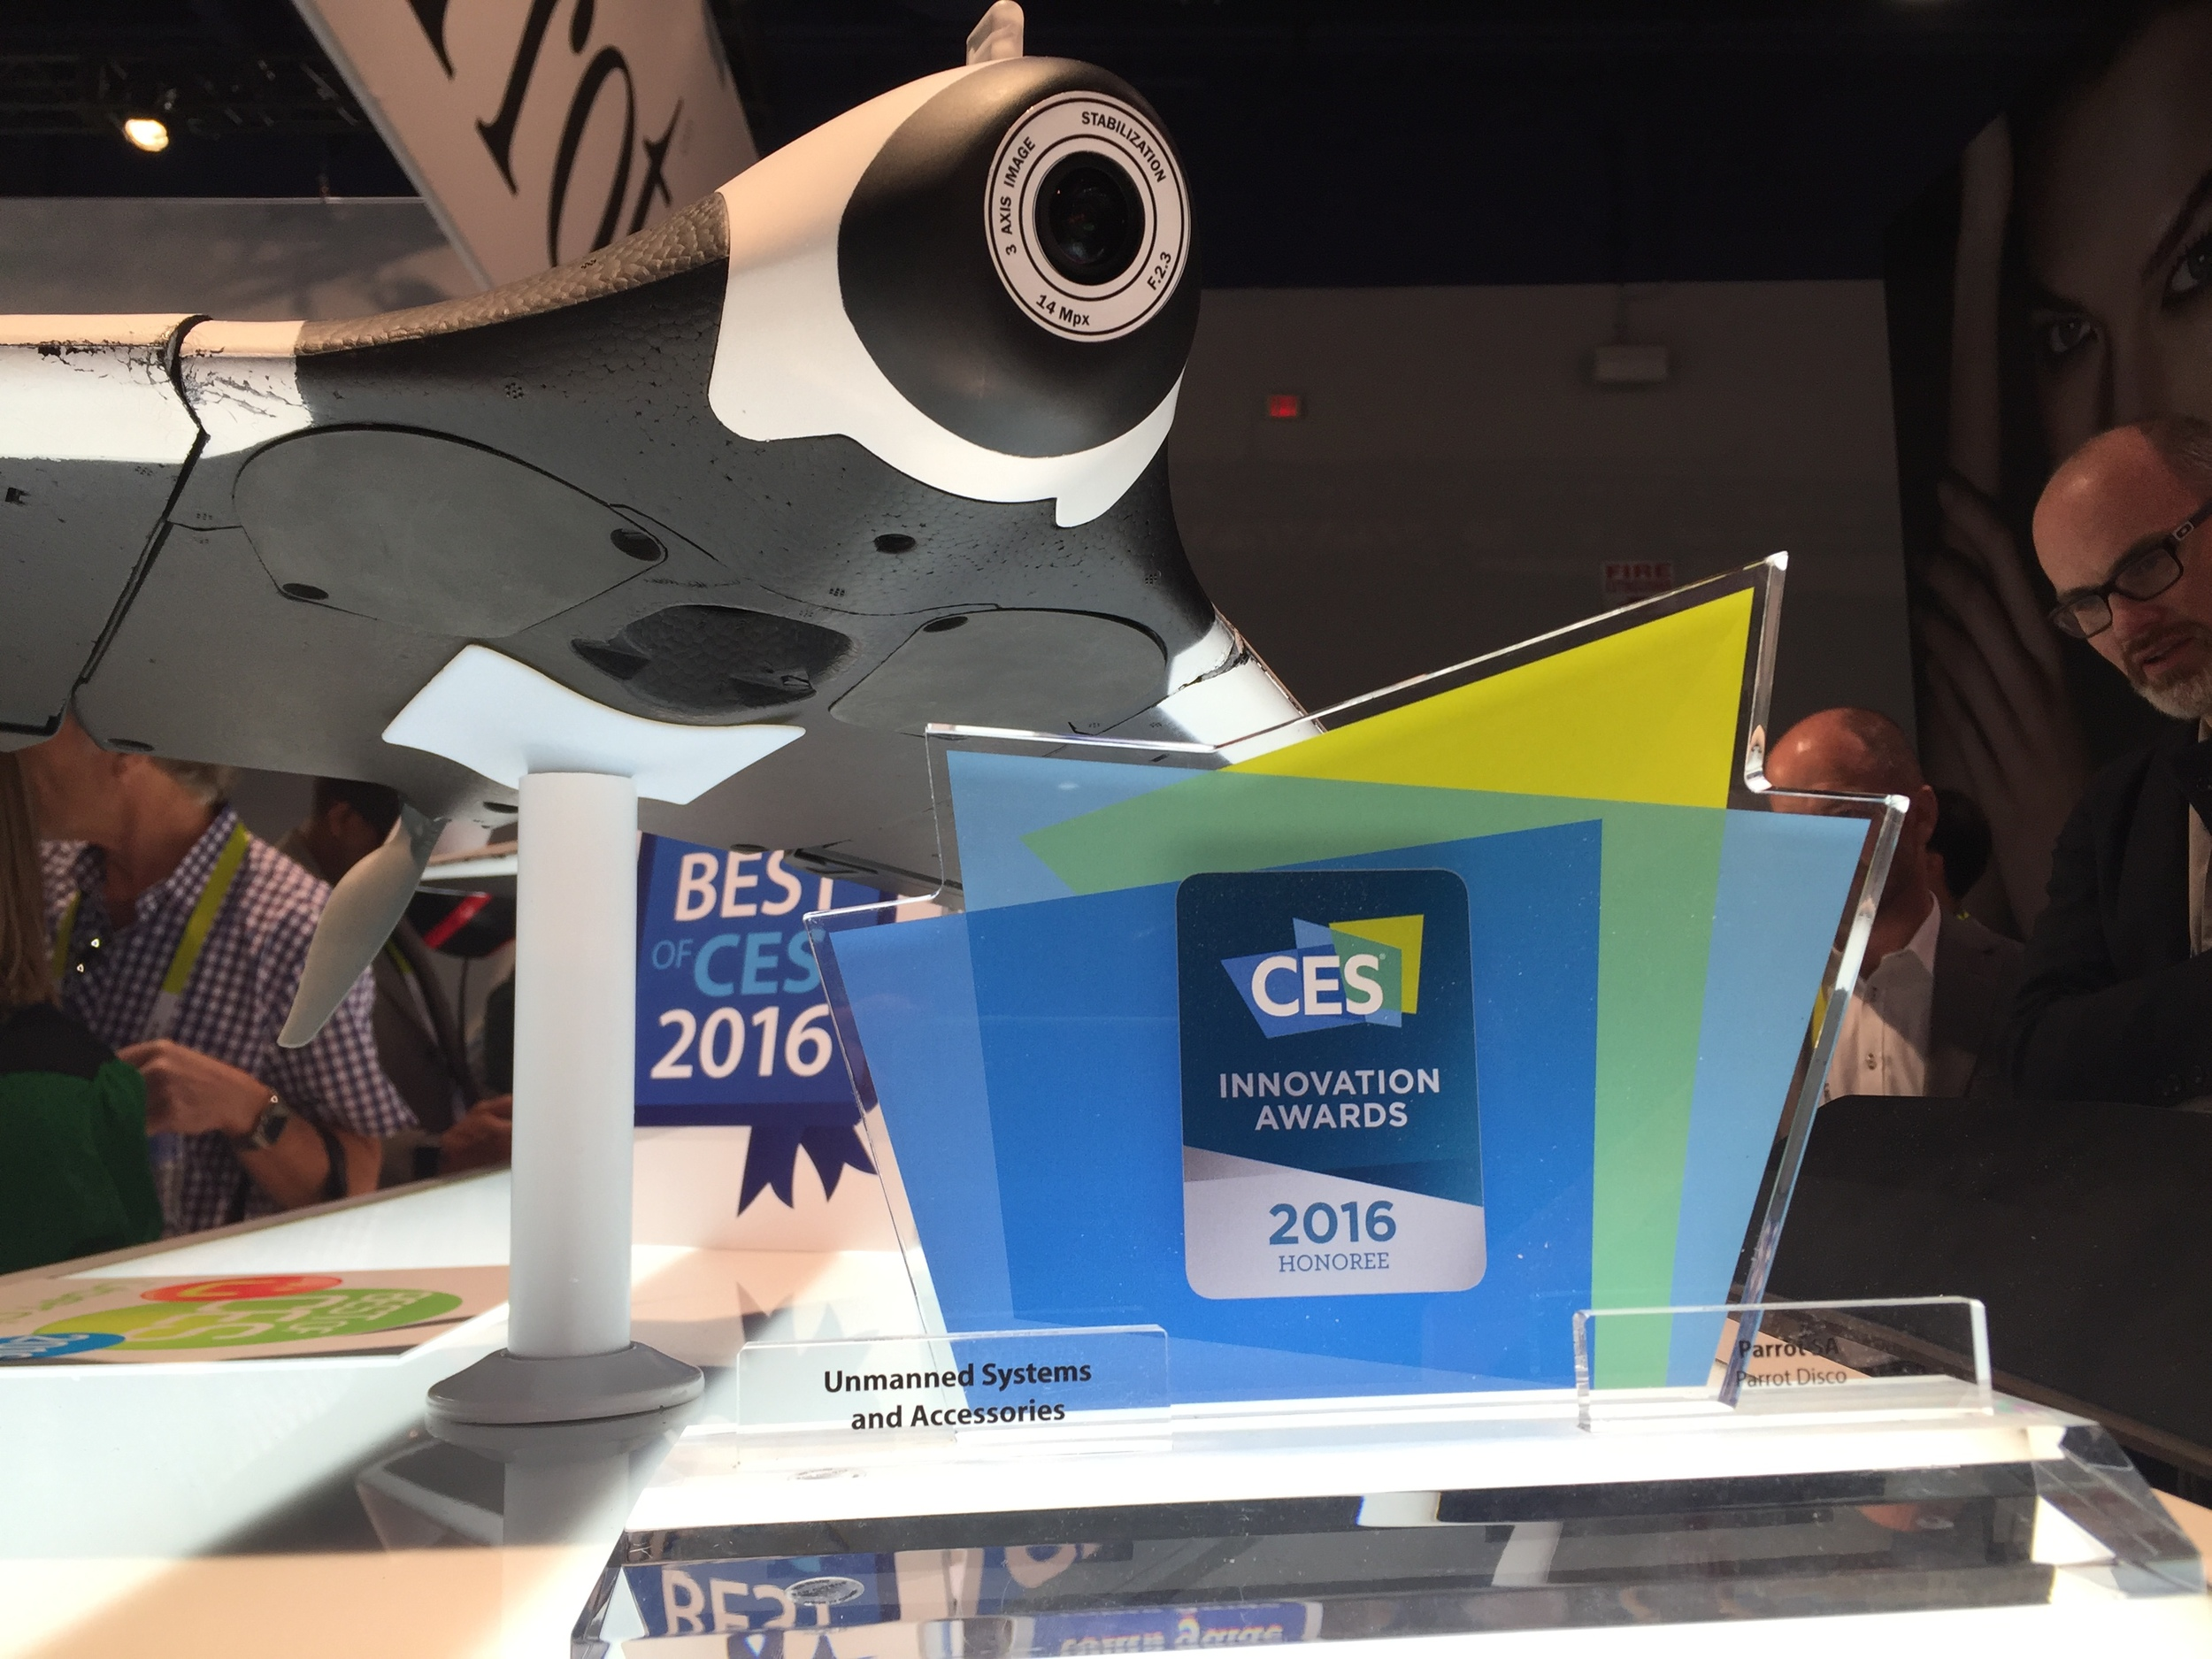 Parrot Disco: CES Innovation Award Honoree - Unmanned Systems and Accessories.